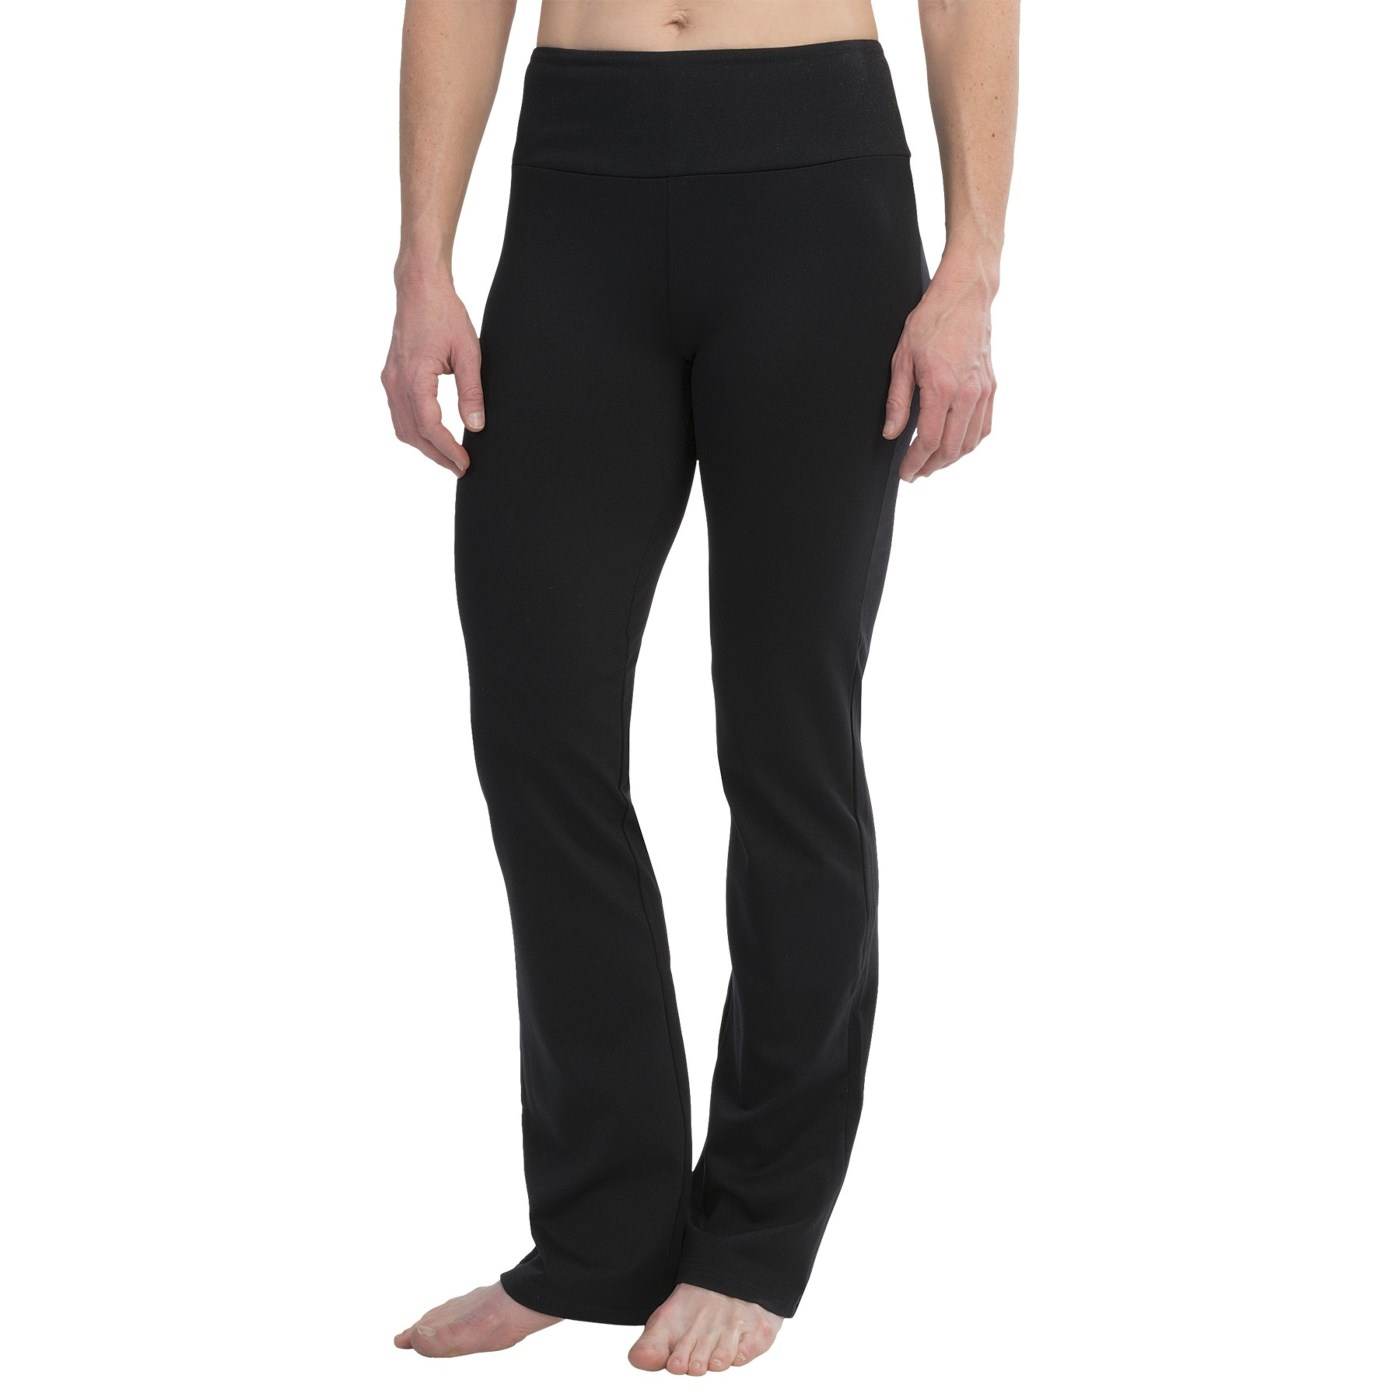 dc8f6ceb09 MSP by Miraclesuit Wear to the Office Yoga Pants (For Women) 8846P ...